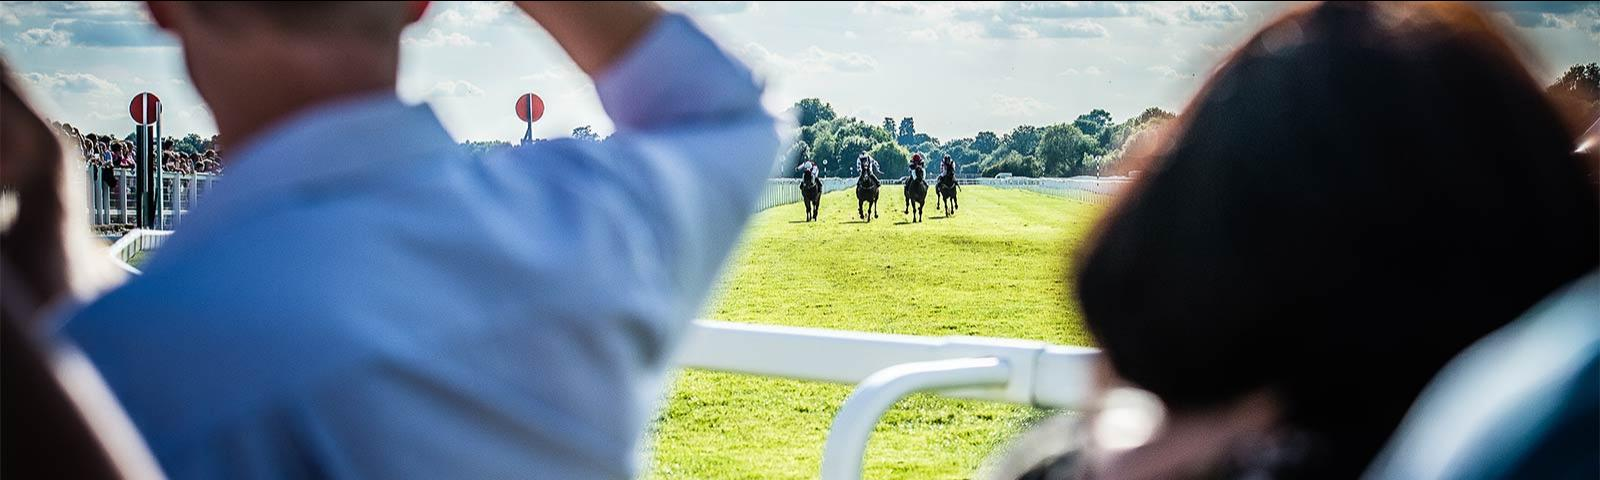 Jockeys racing at Windsor Racecourse with racegoers looking on.